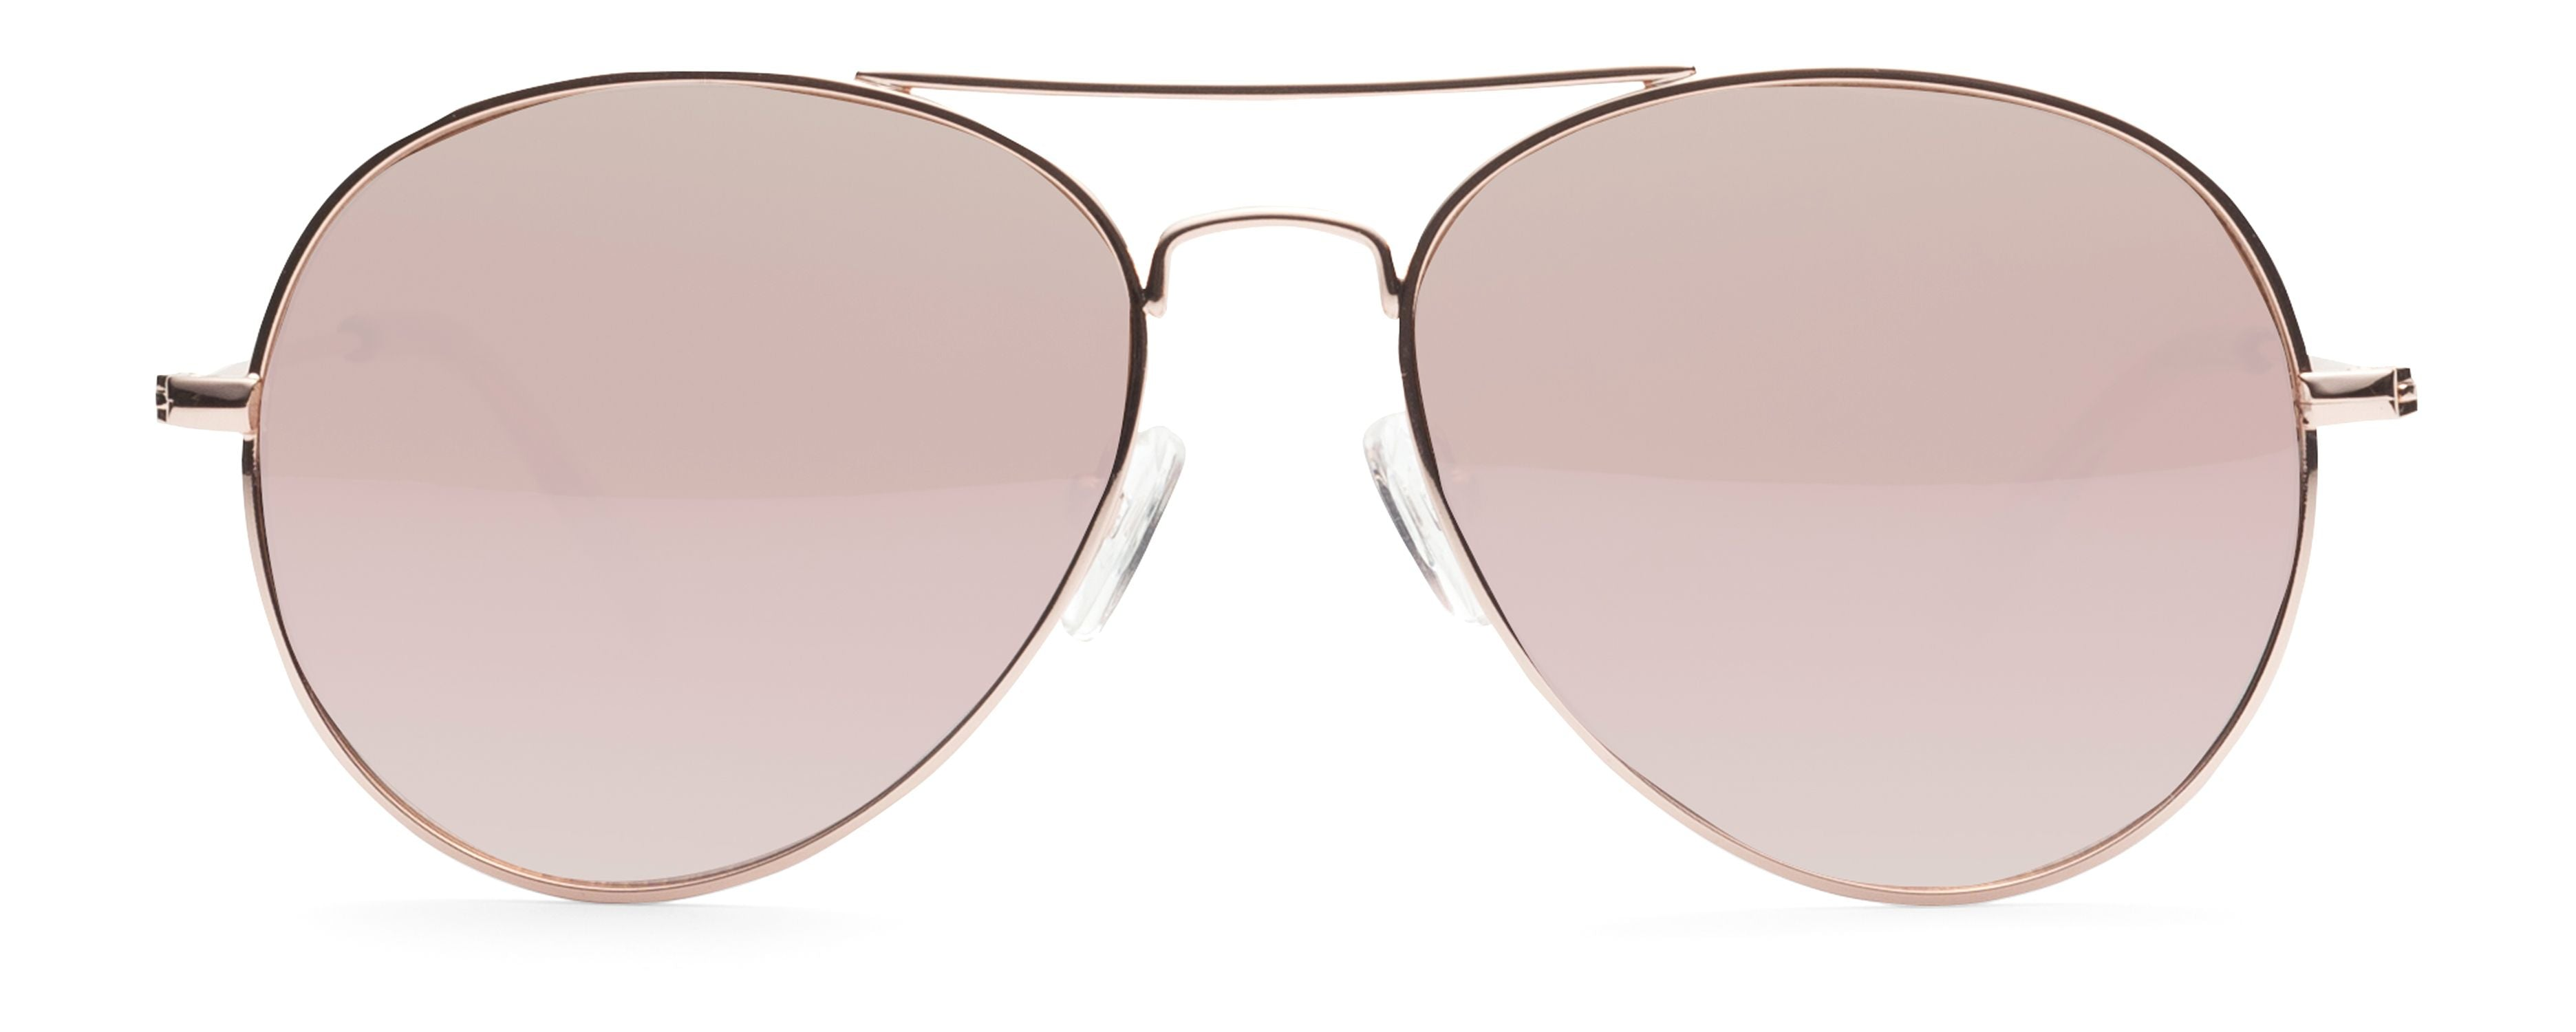 ZAP Rose Gold JUNiA Kids Sunglasses